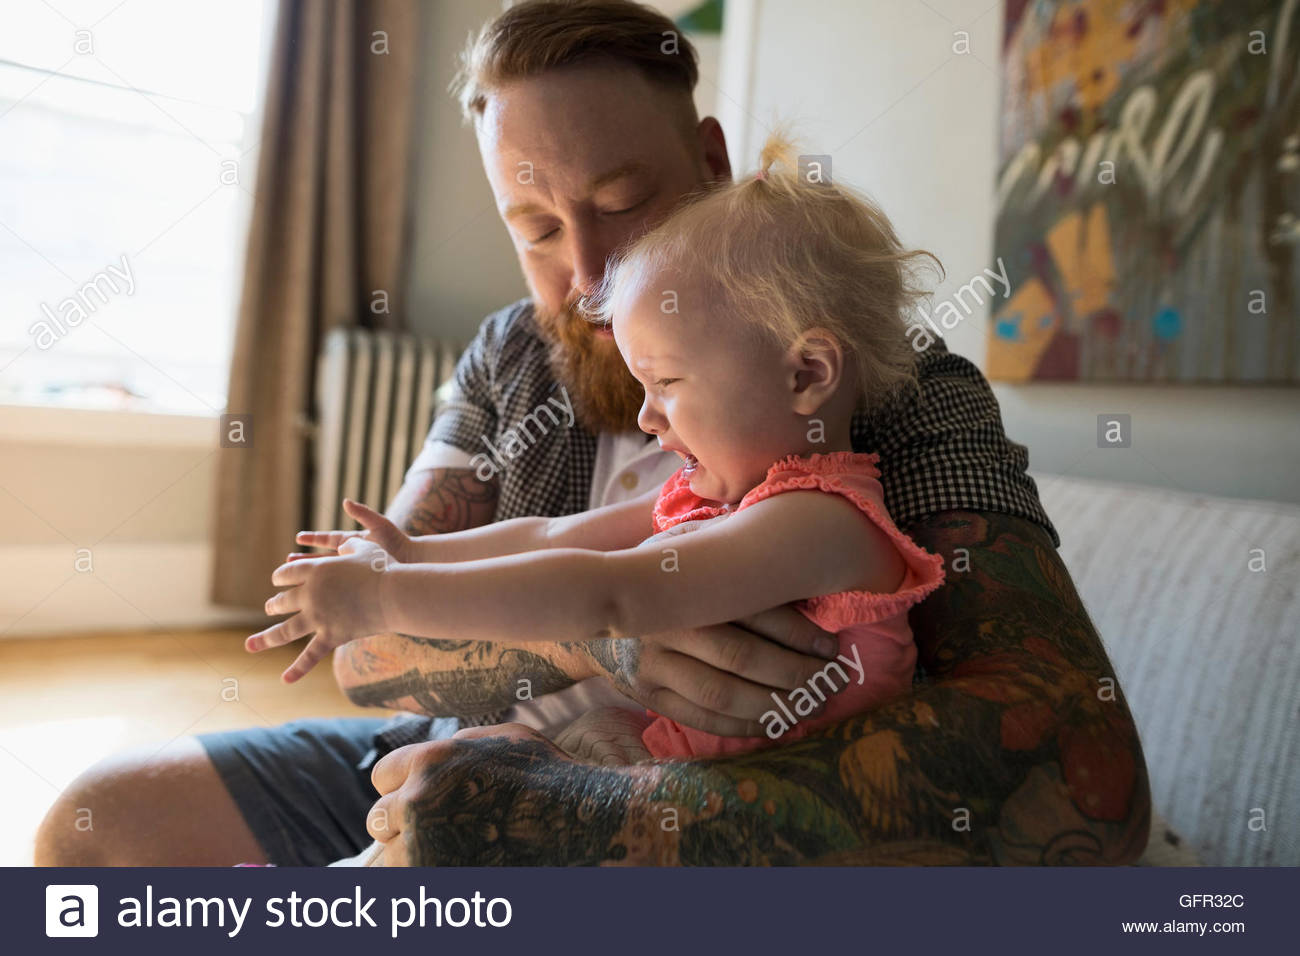 Father with tattoos holding crying daughter - Stock Image